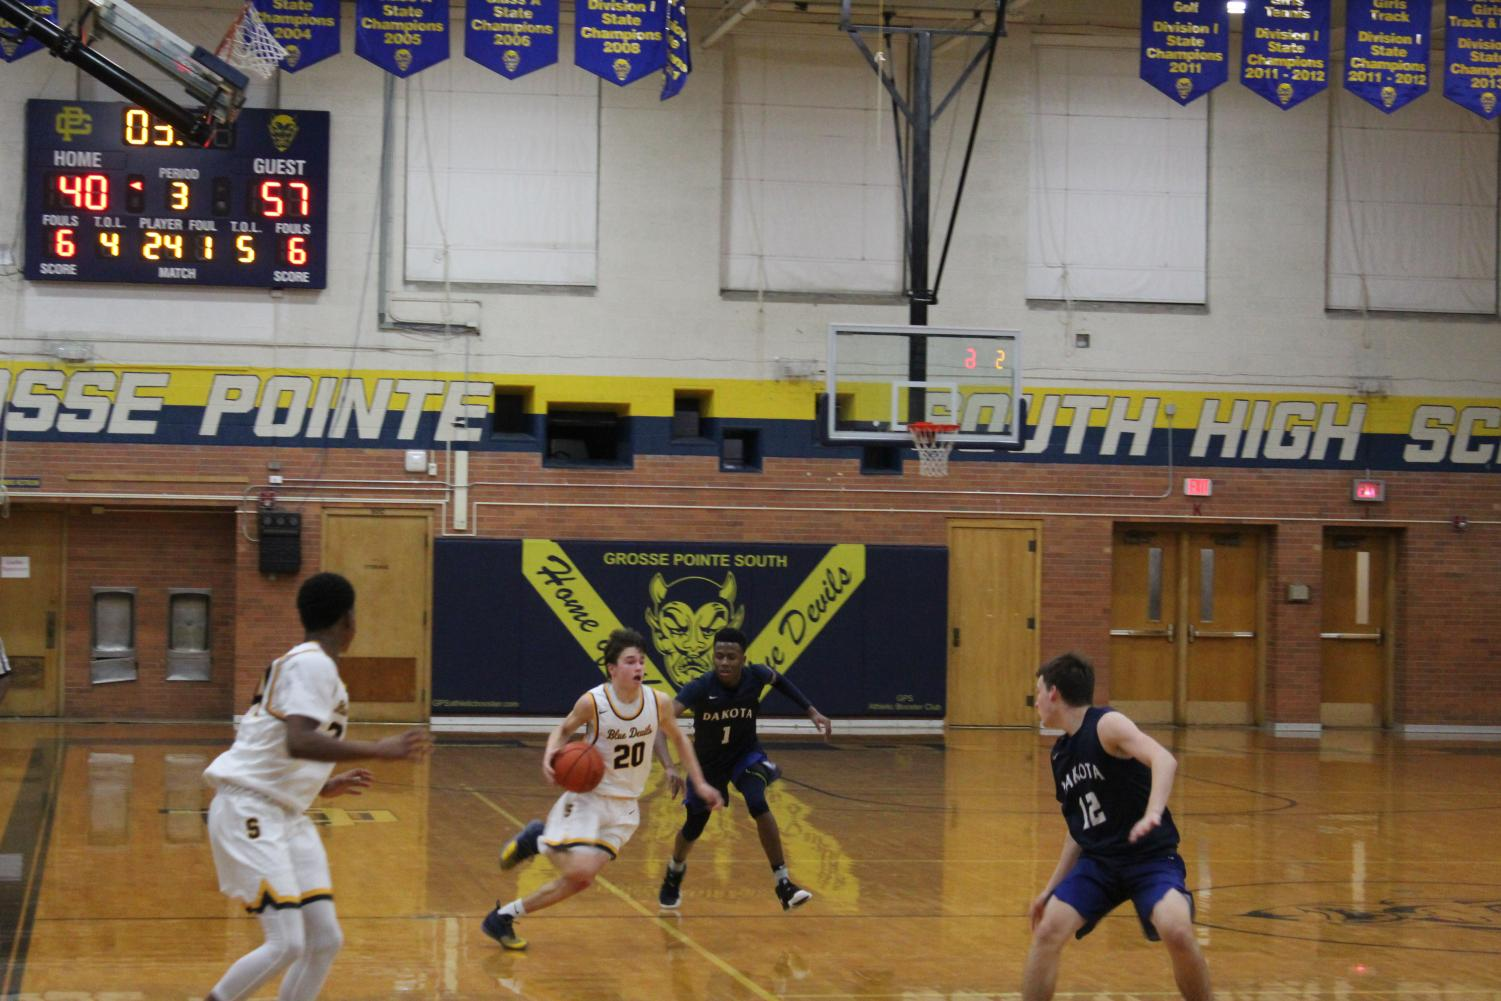 Alex Shaheen '20 dribbles up the court last season against Dakota. The team is under a new coach this season and Shaheen said the team is looking to beat cross-town rival North twice. Photo by Ryan Caldwell '21.